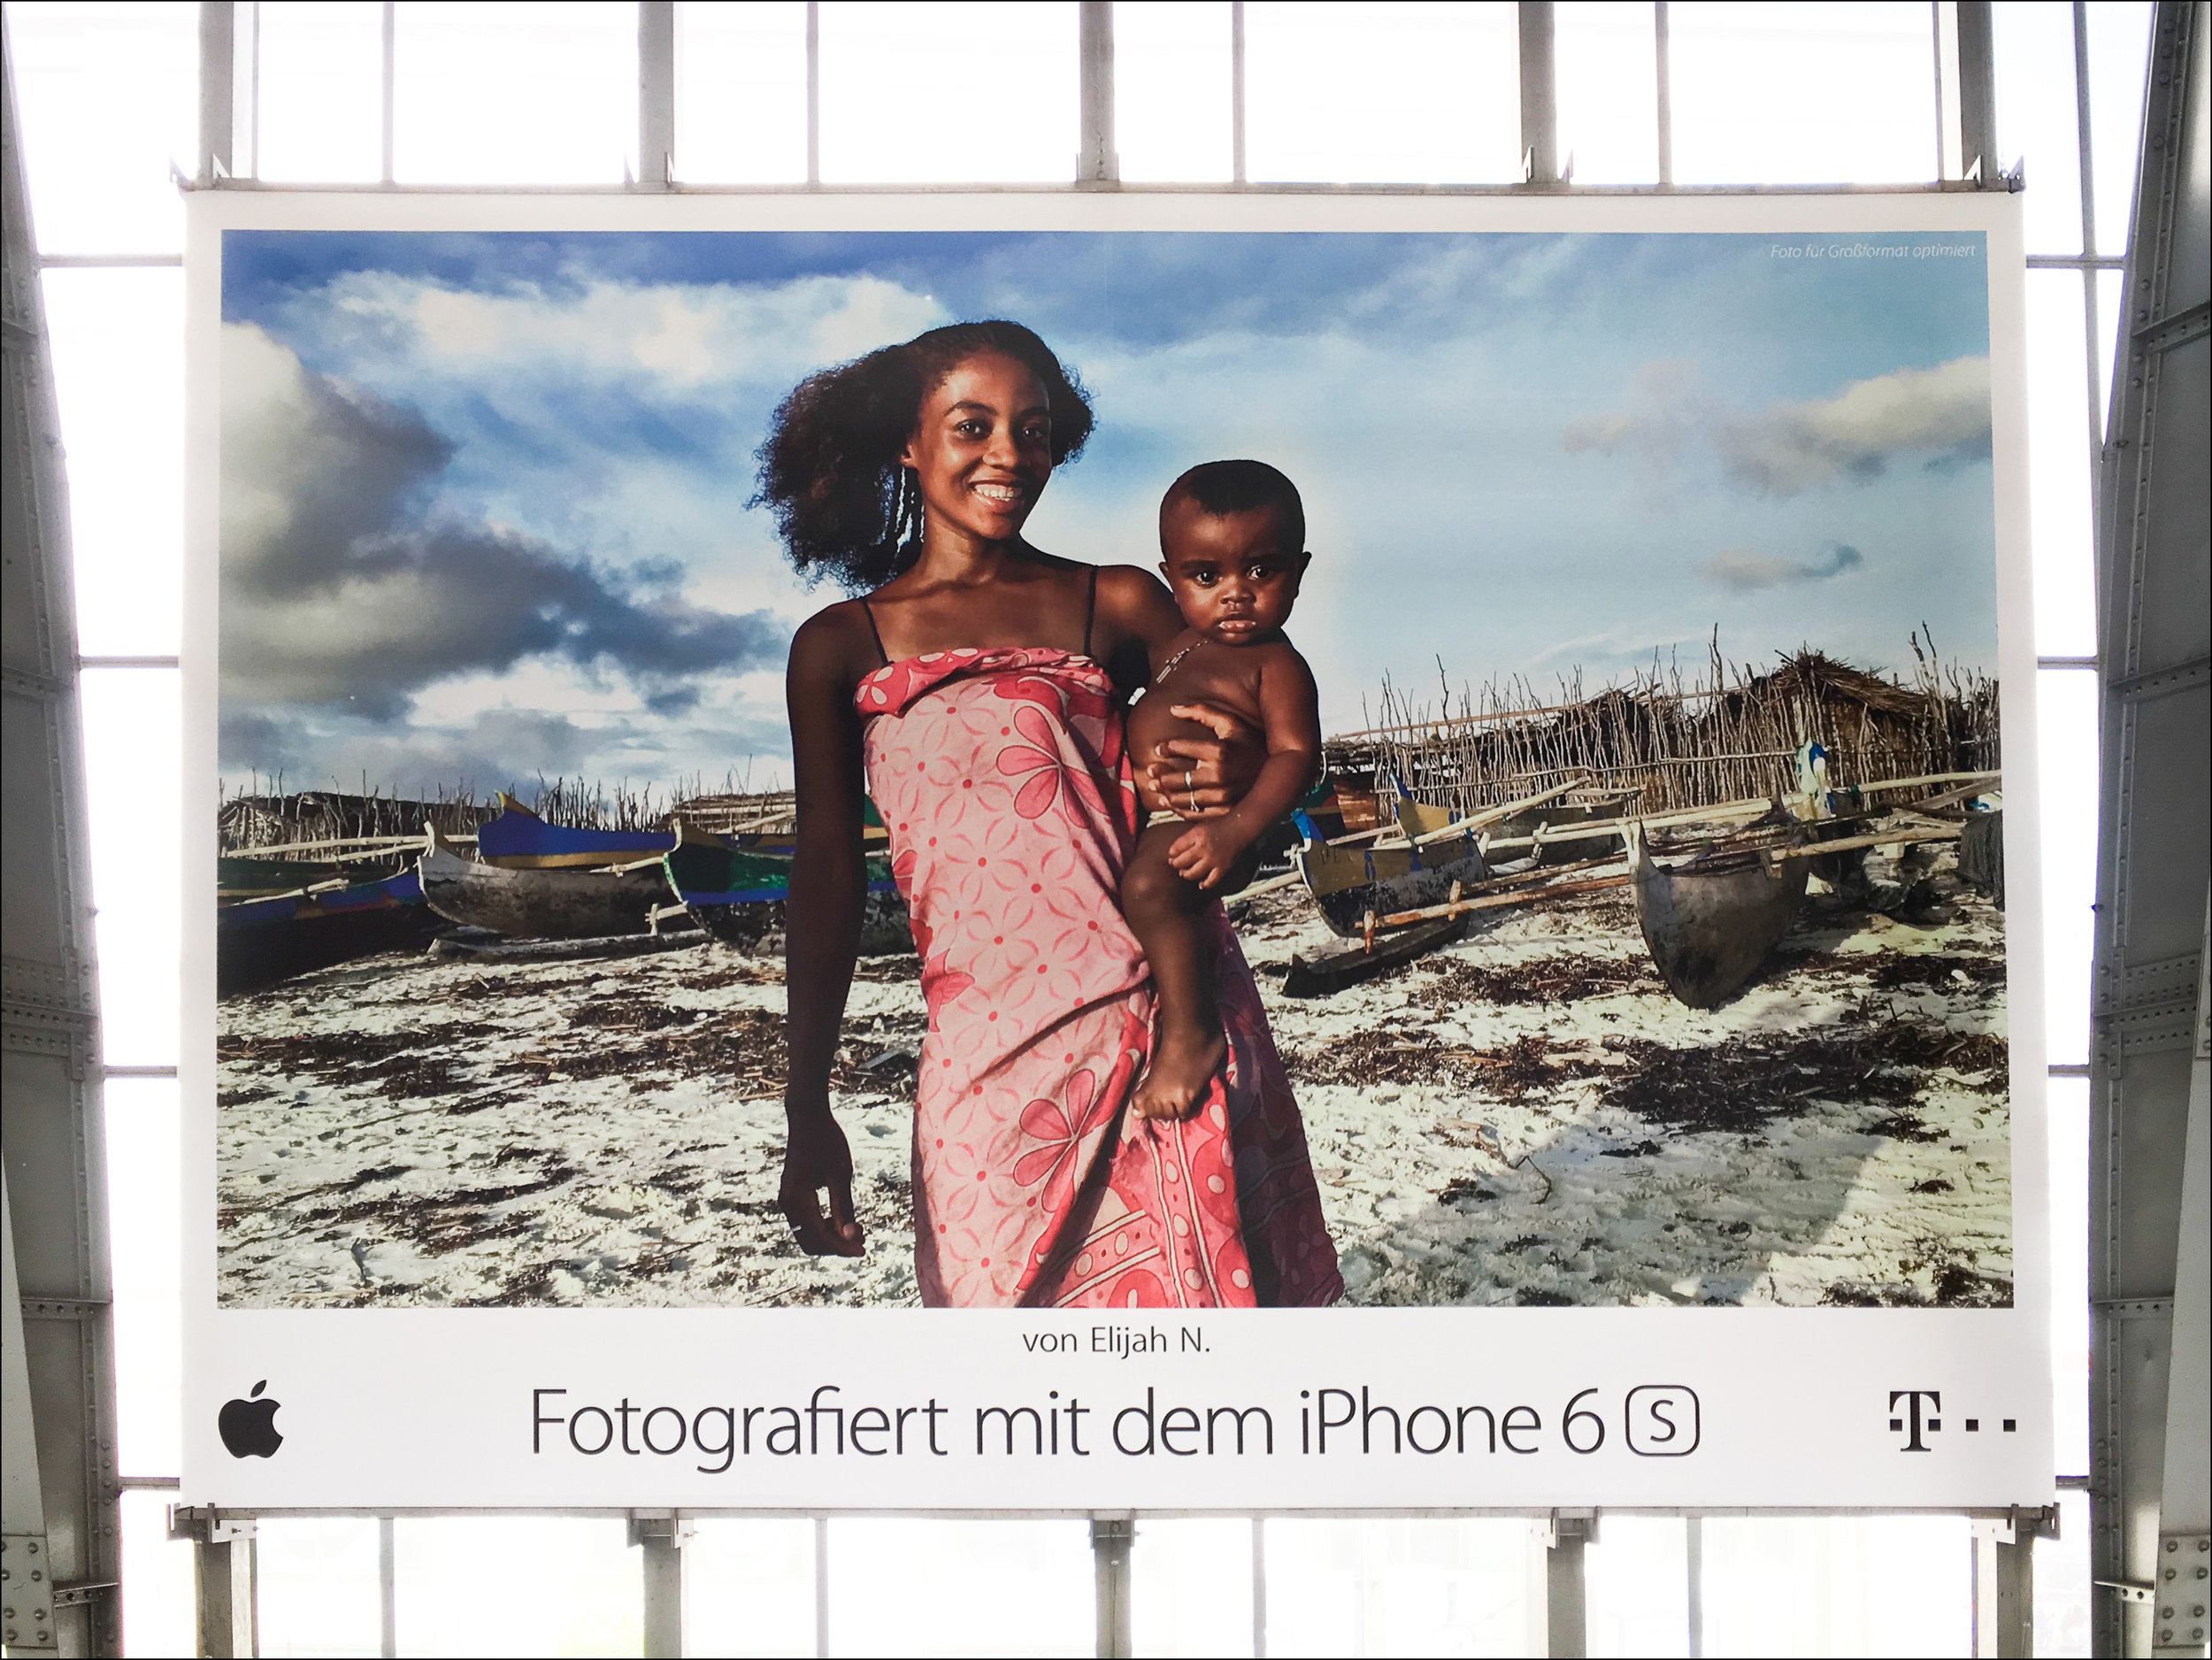 Apple 'Shot on iPhone 6s' OOH campaign, Berlin, Germany, June 2016